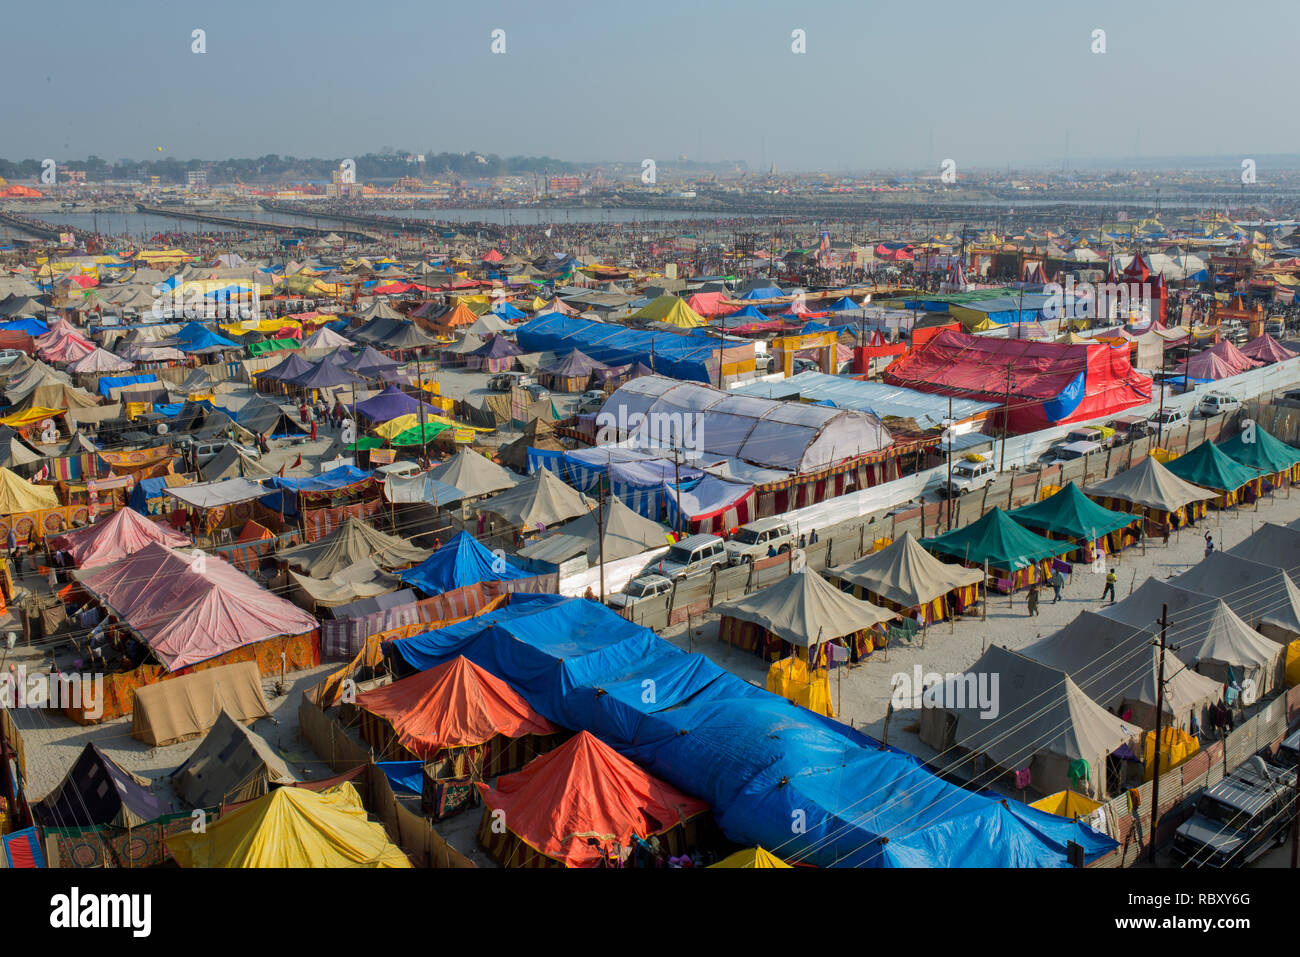 An aerial view of the temporary tents for the pilgrims at Kumbh mela. Stock Photo